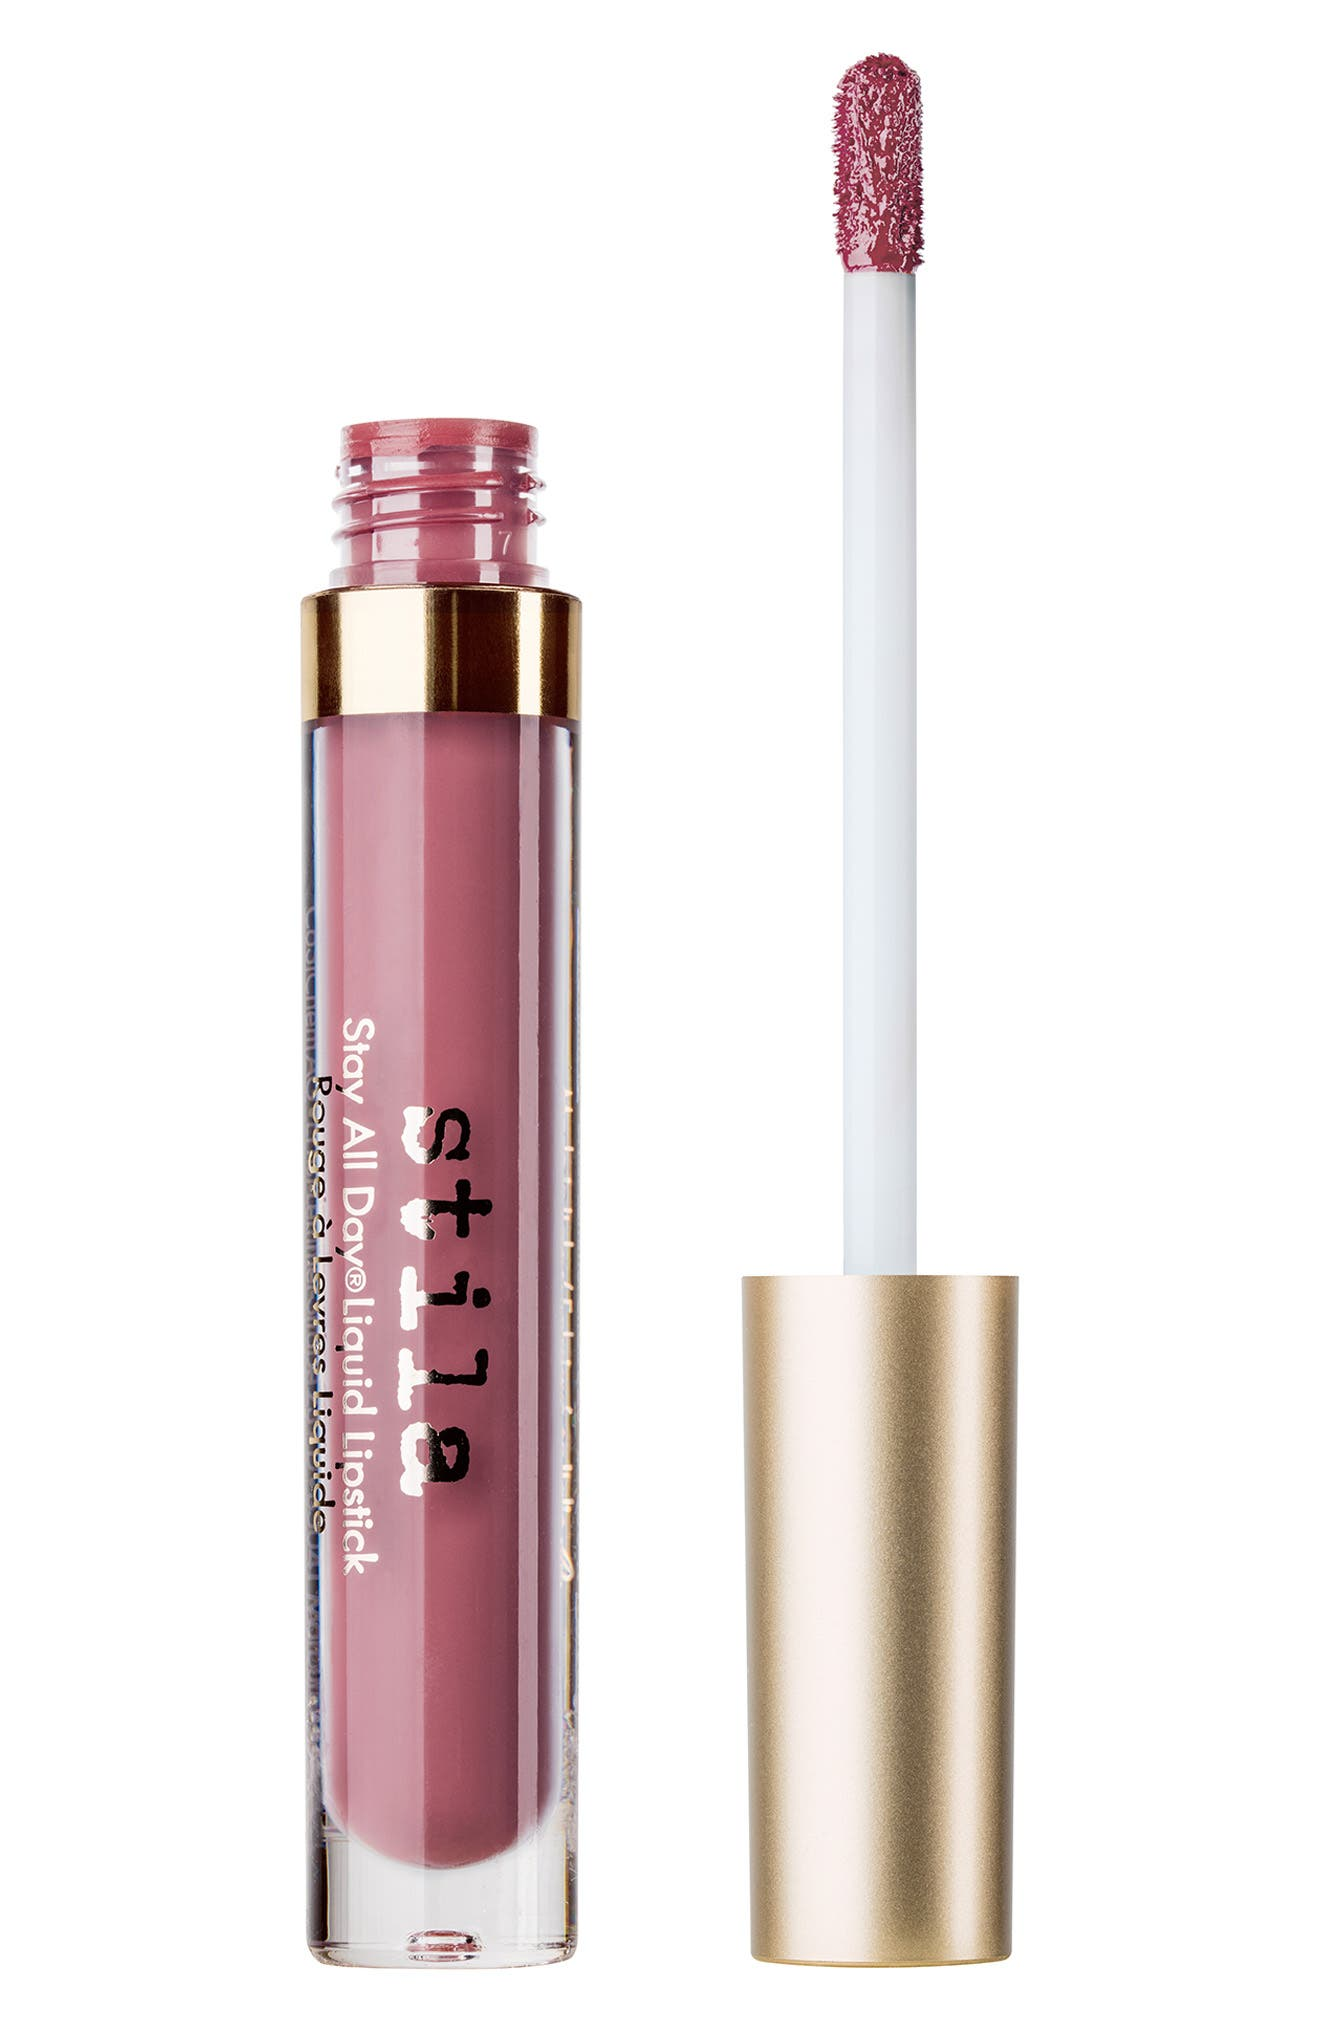 Image of Stila stay all day liquid lipstick